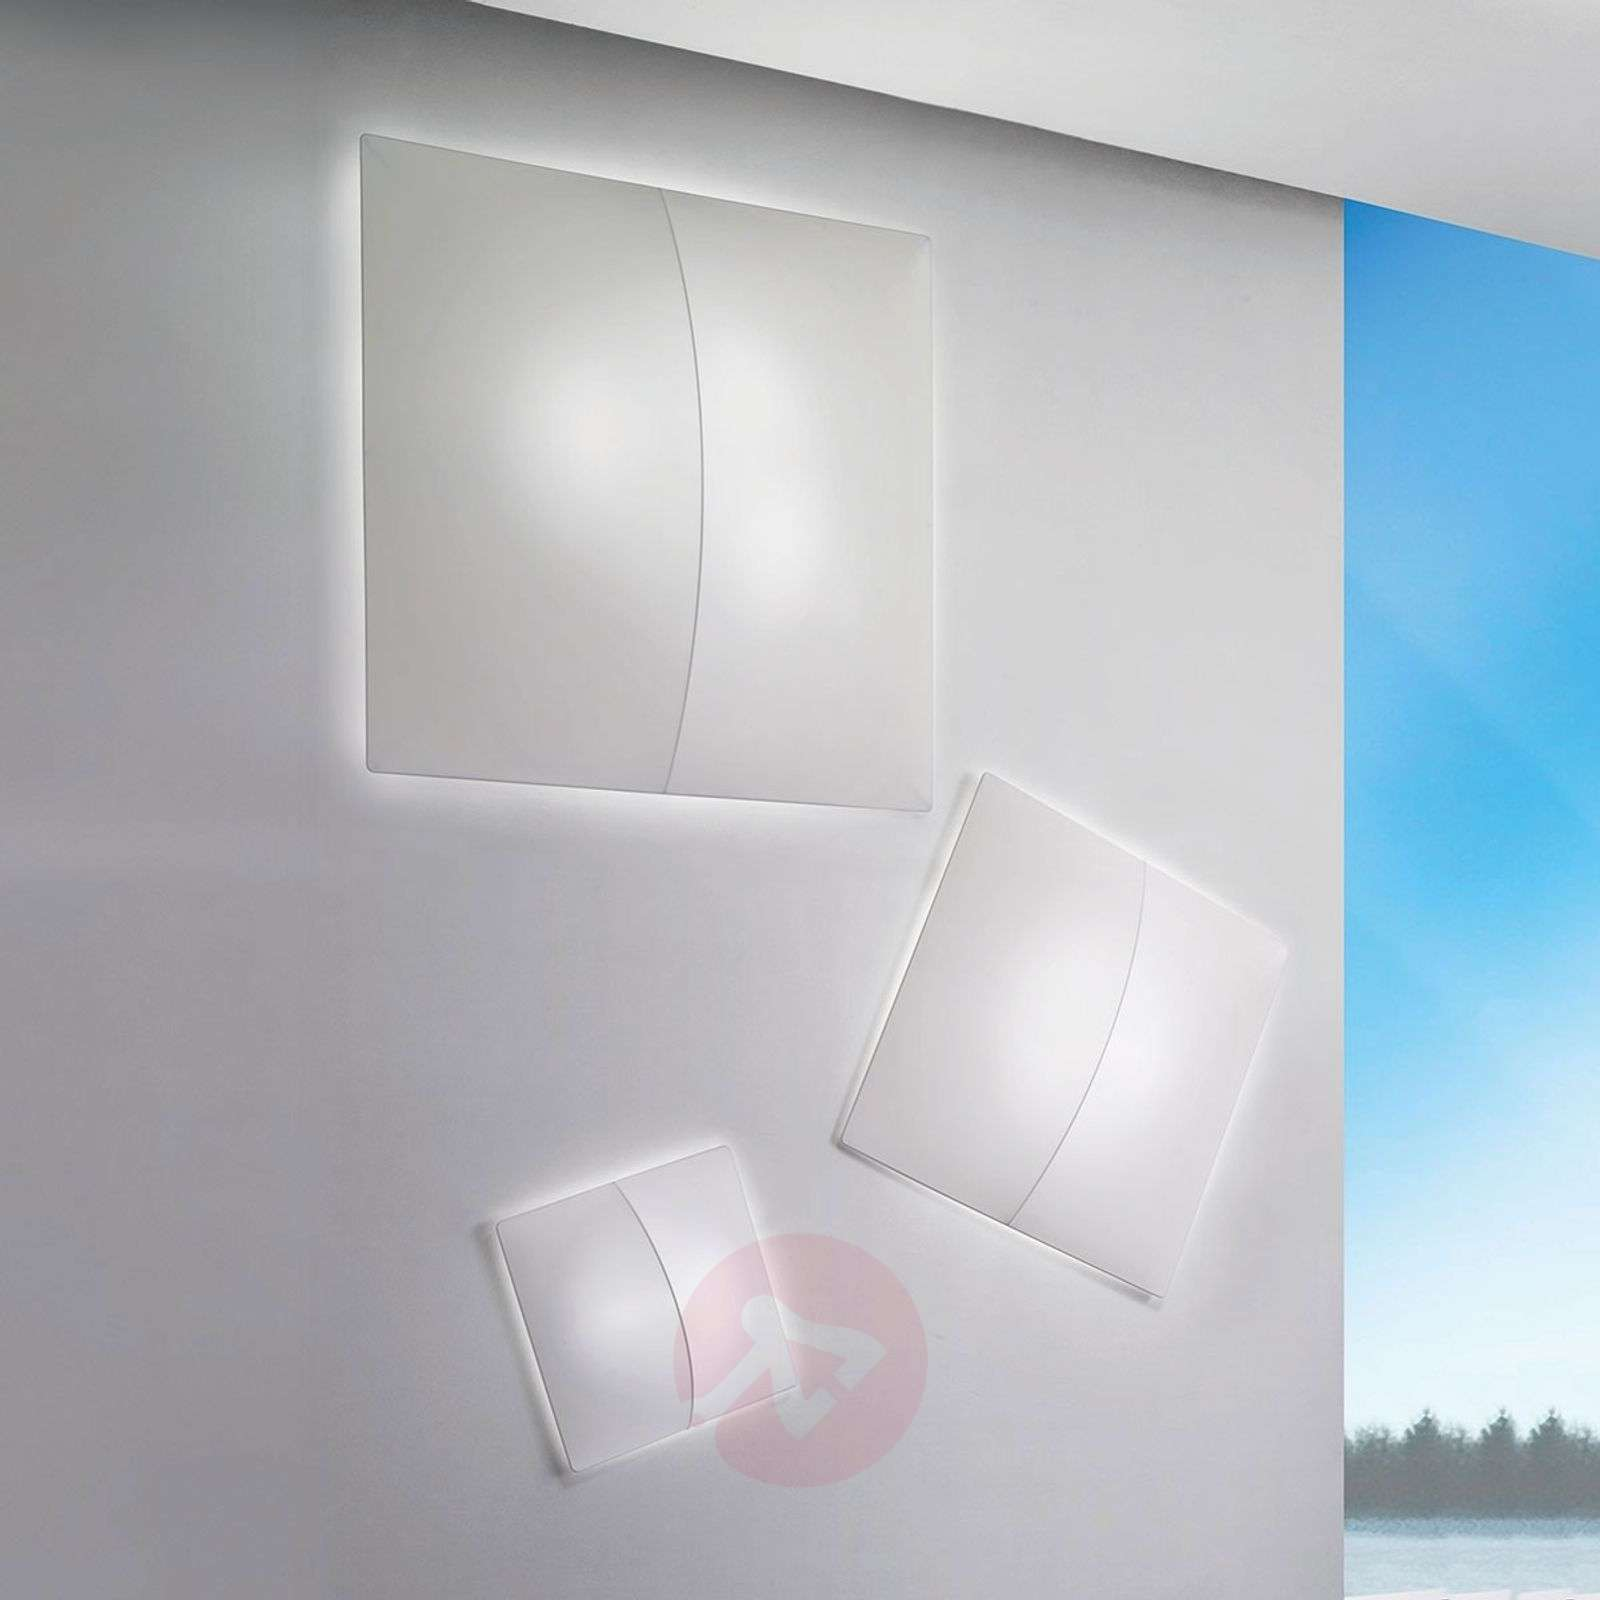 Nelly S square wall light with fabric-1088024X-01